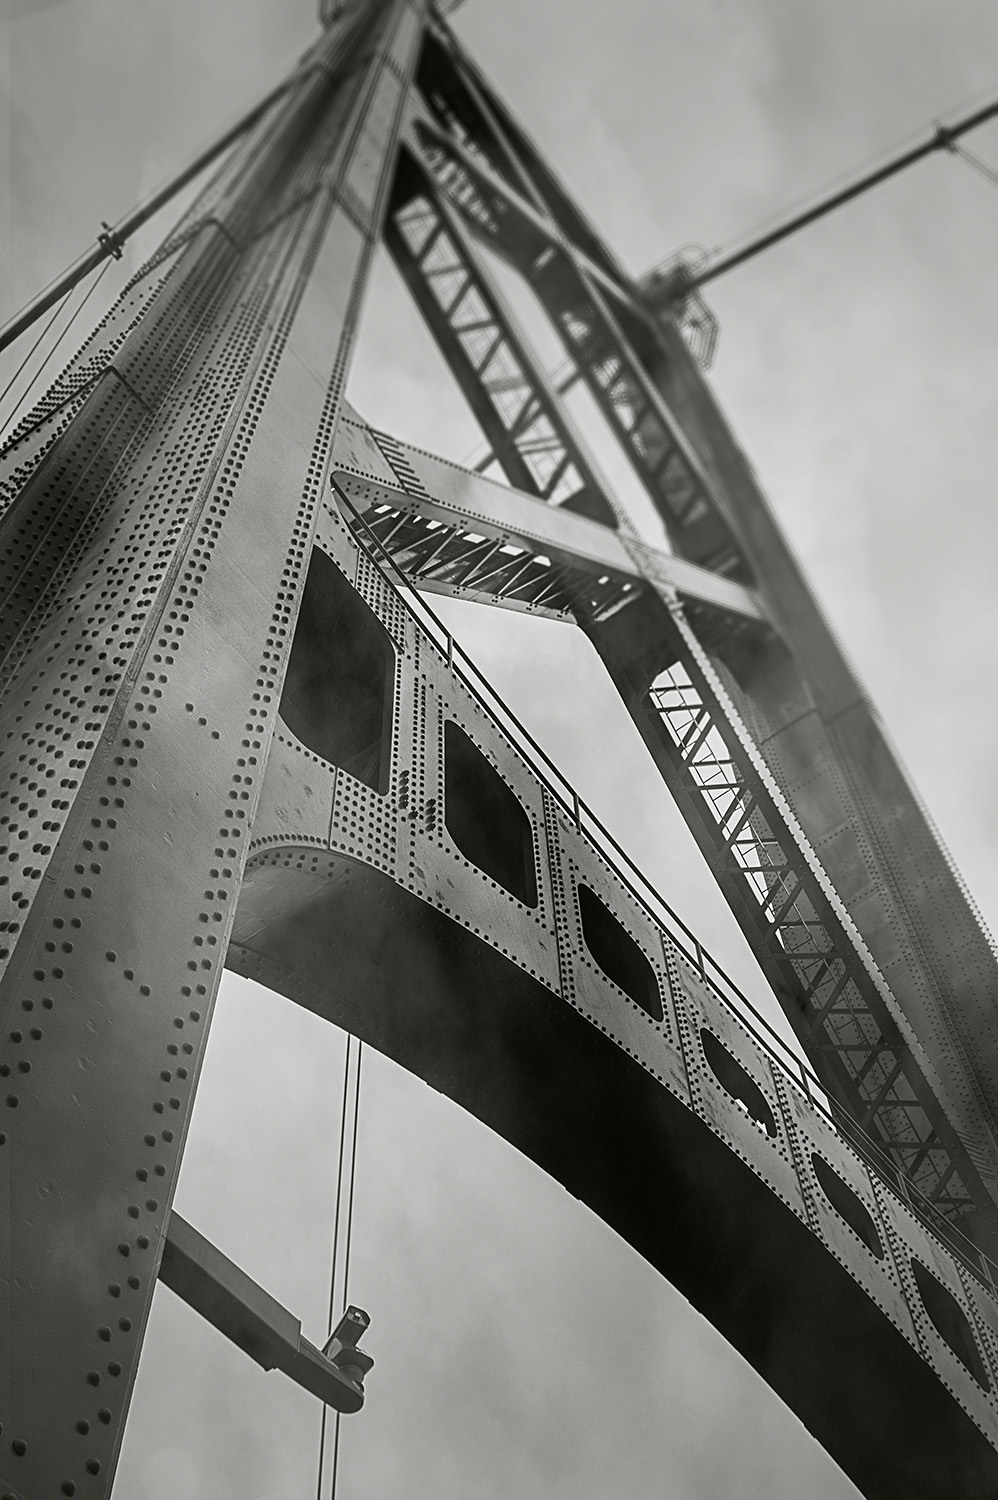 Raincity Series - Tower, Lions Gate Bridge